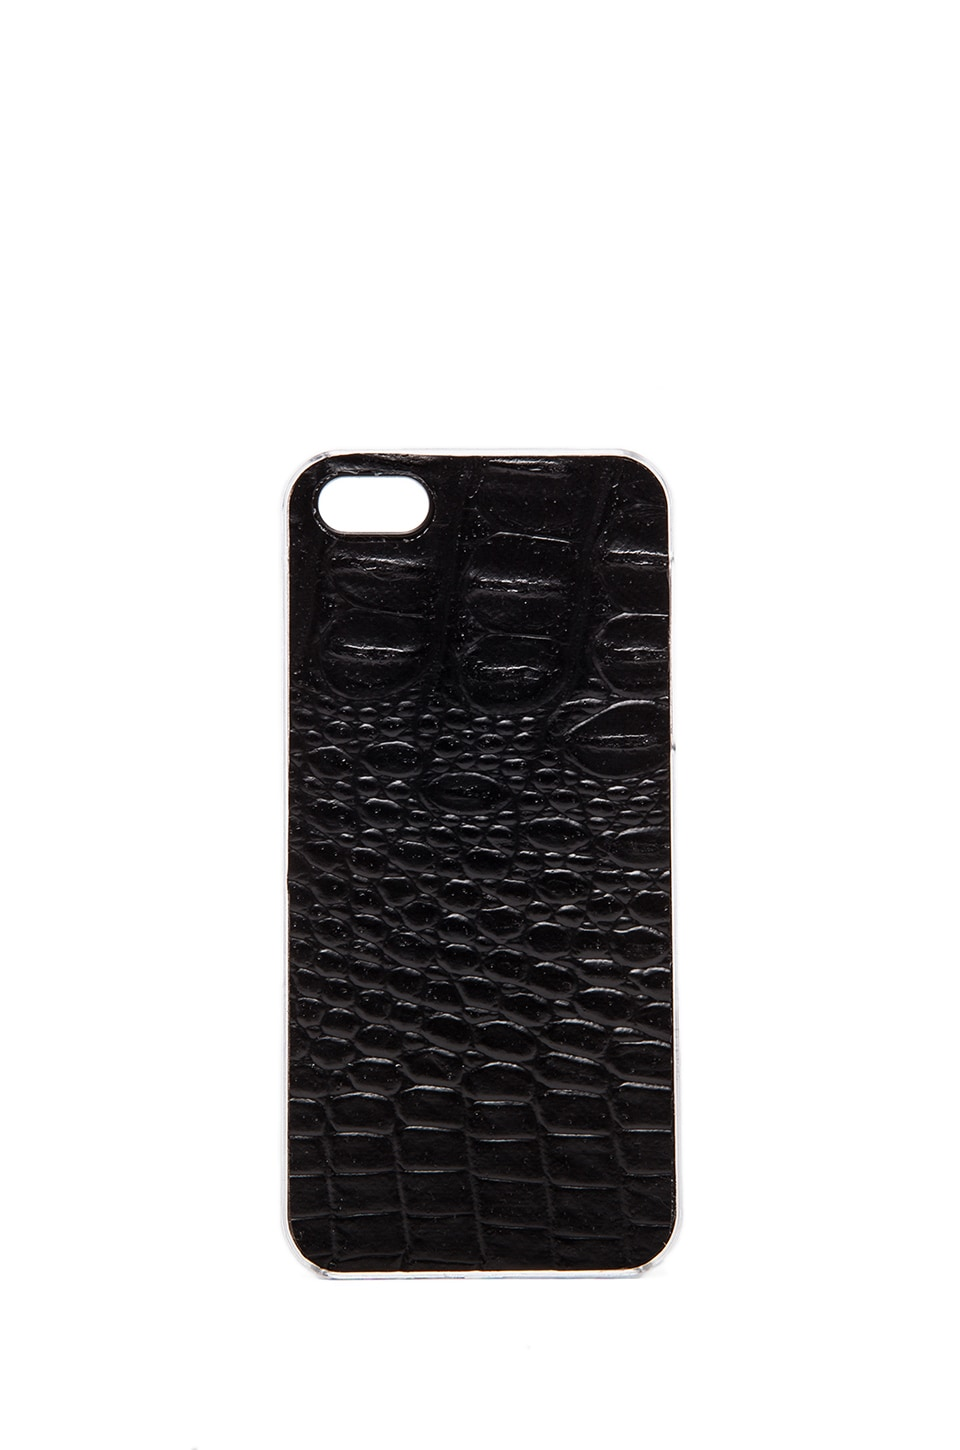 ZERO GRAVITY Faux Leather Reptilia iPhone 5 Case in Black